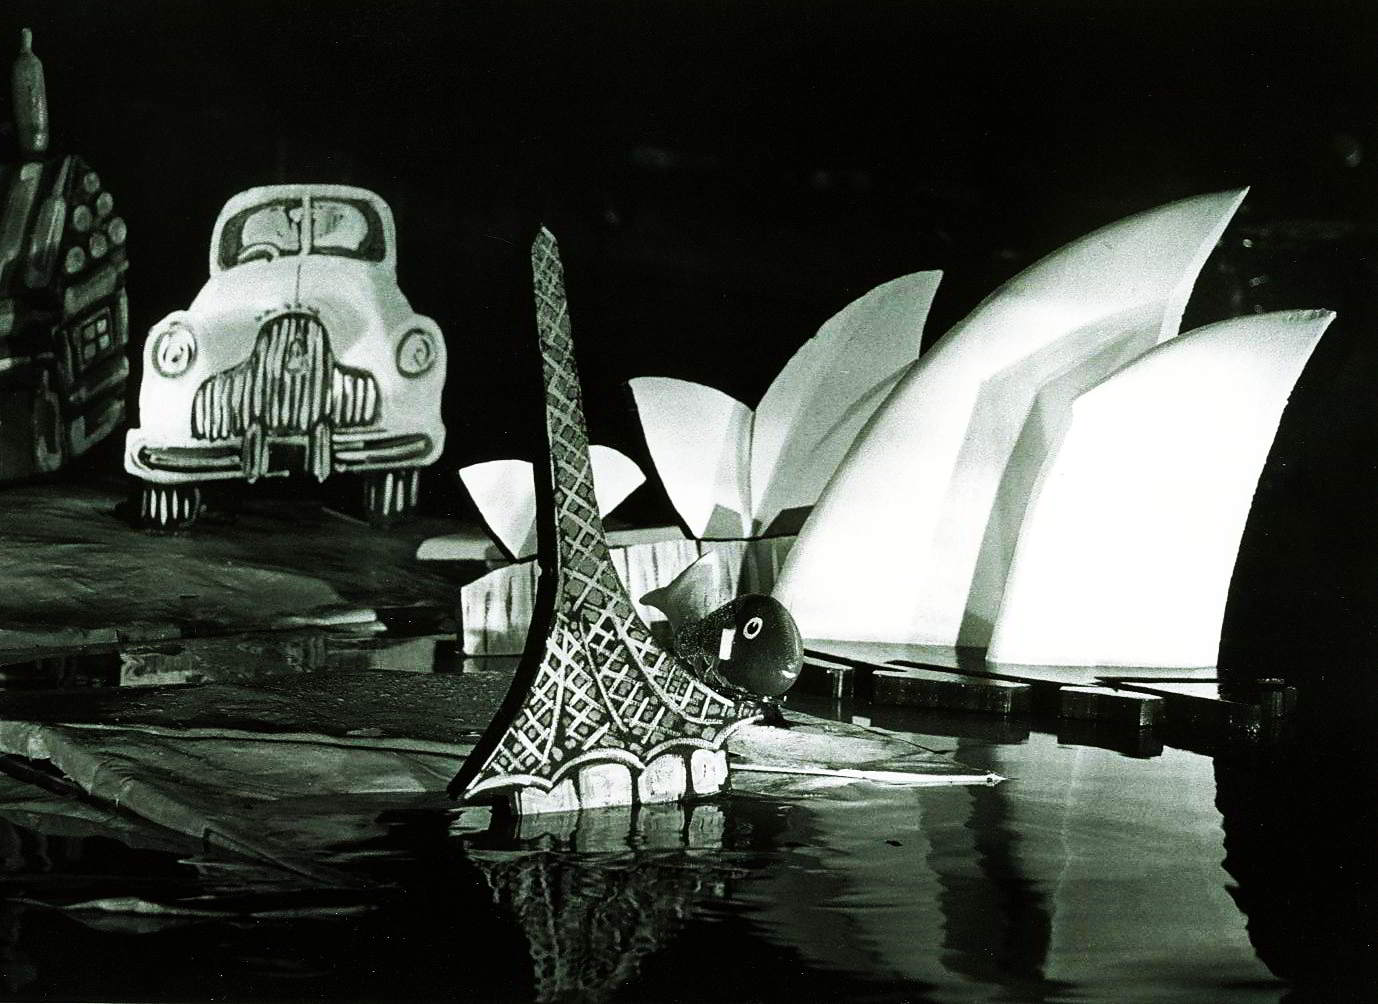 black and white photo cut outs of FJHolden, opera house and Melbourne arts centre spire